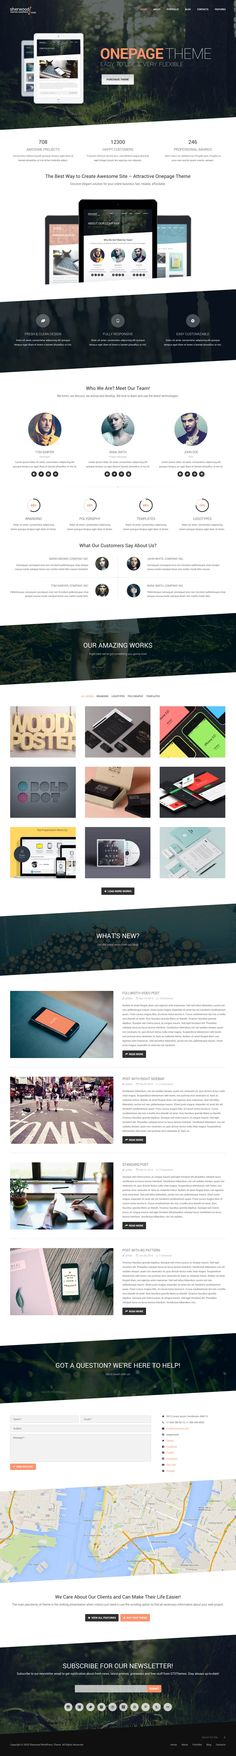 One page Design | #onepagedesign #neutral